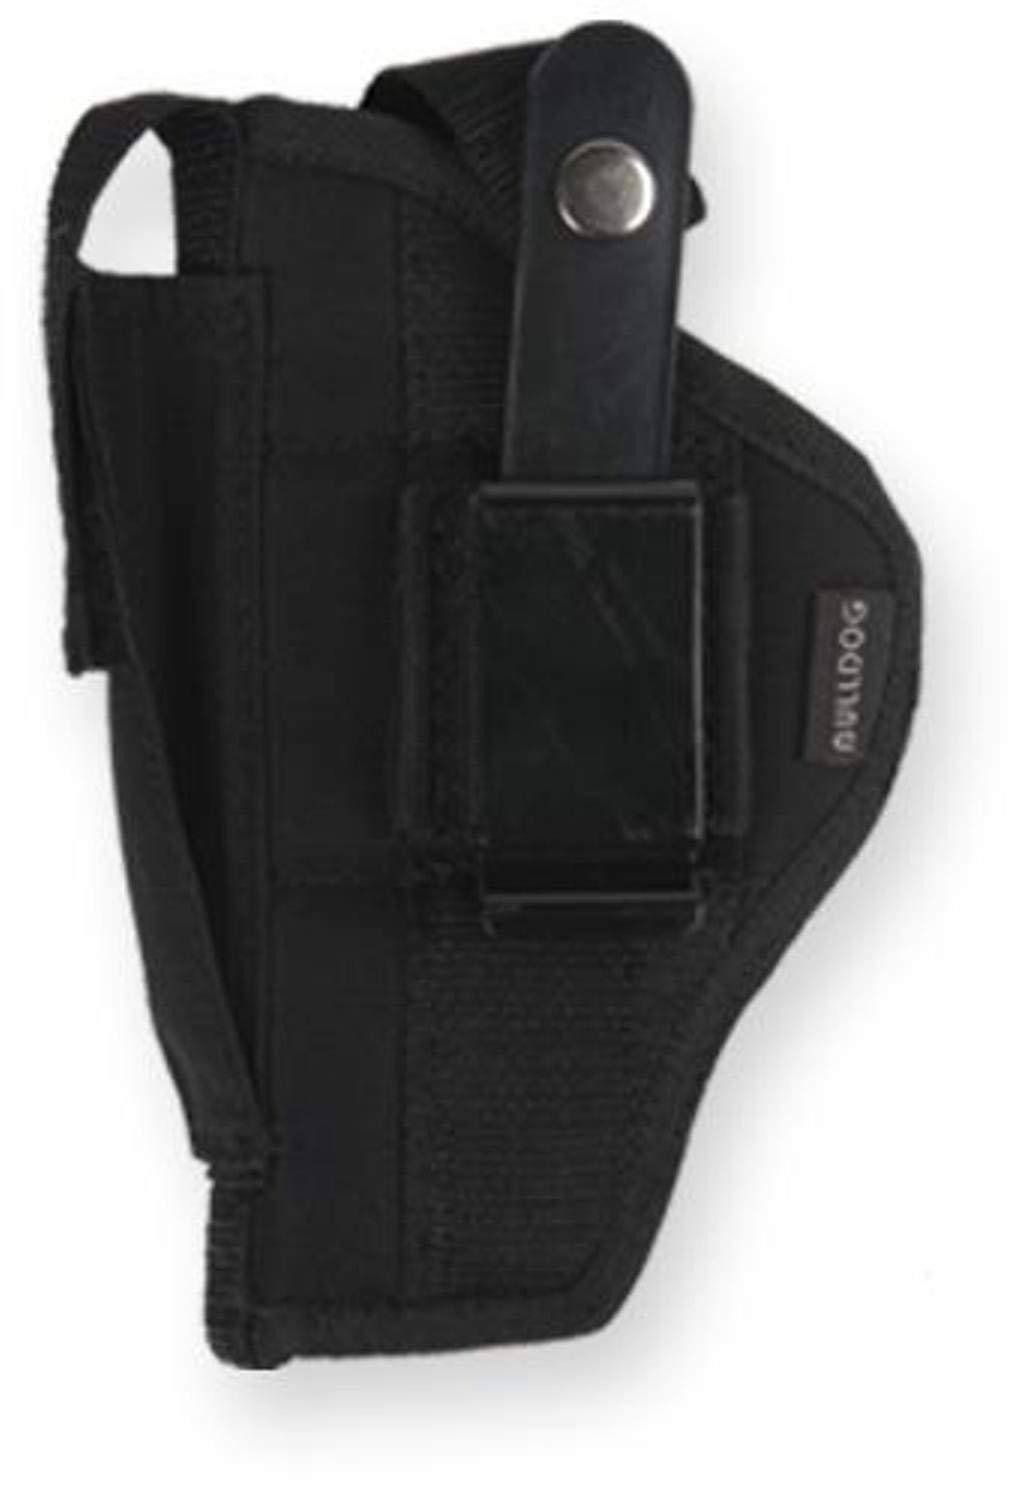 Bulldog Belt and clip ambi holster w/clam shell packaging